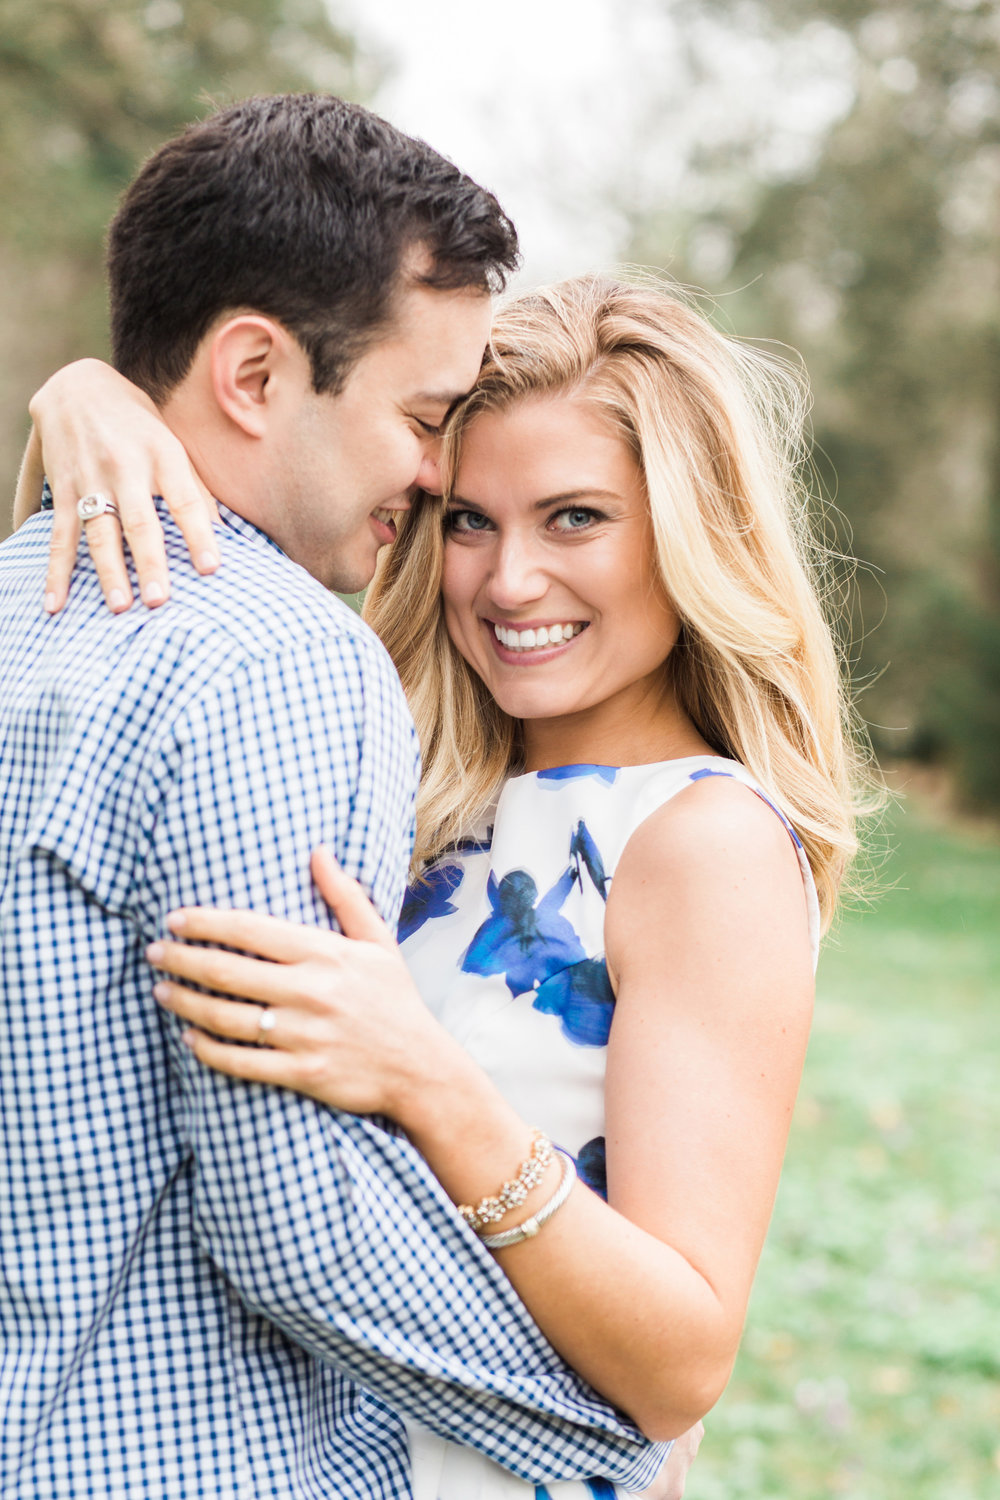 HNP-Chelsea-Jason-Longwood-Gardens-Spring-Engagement-Photos_047.jpg